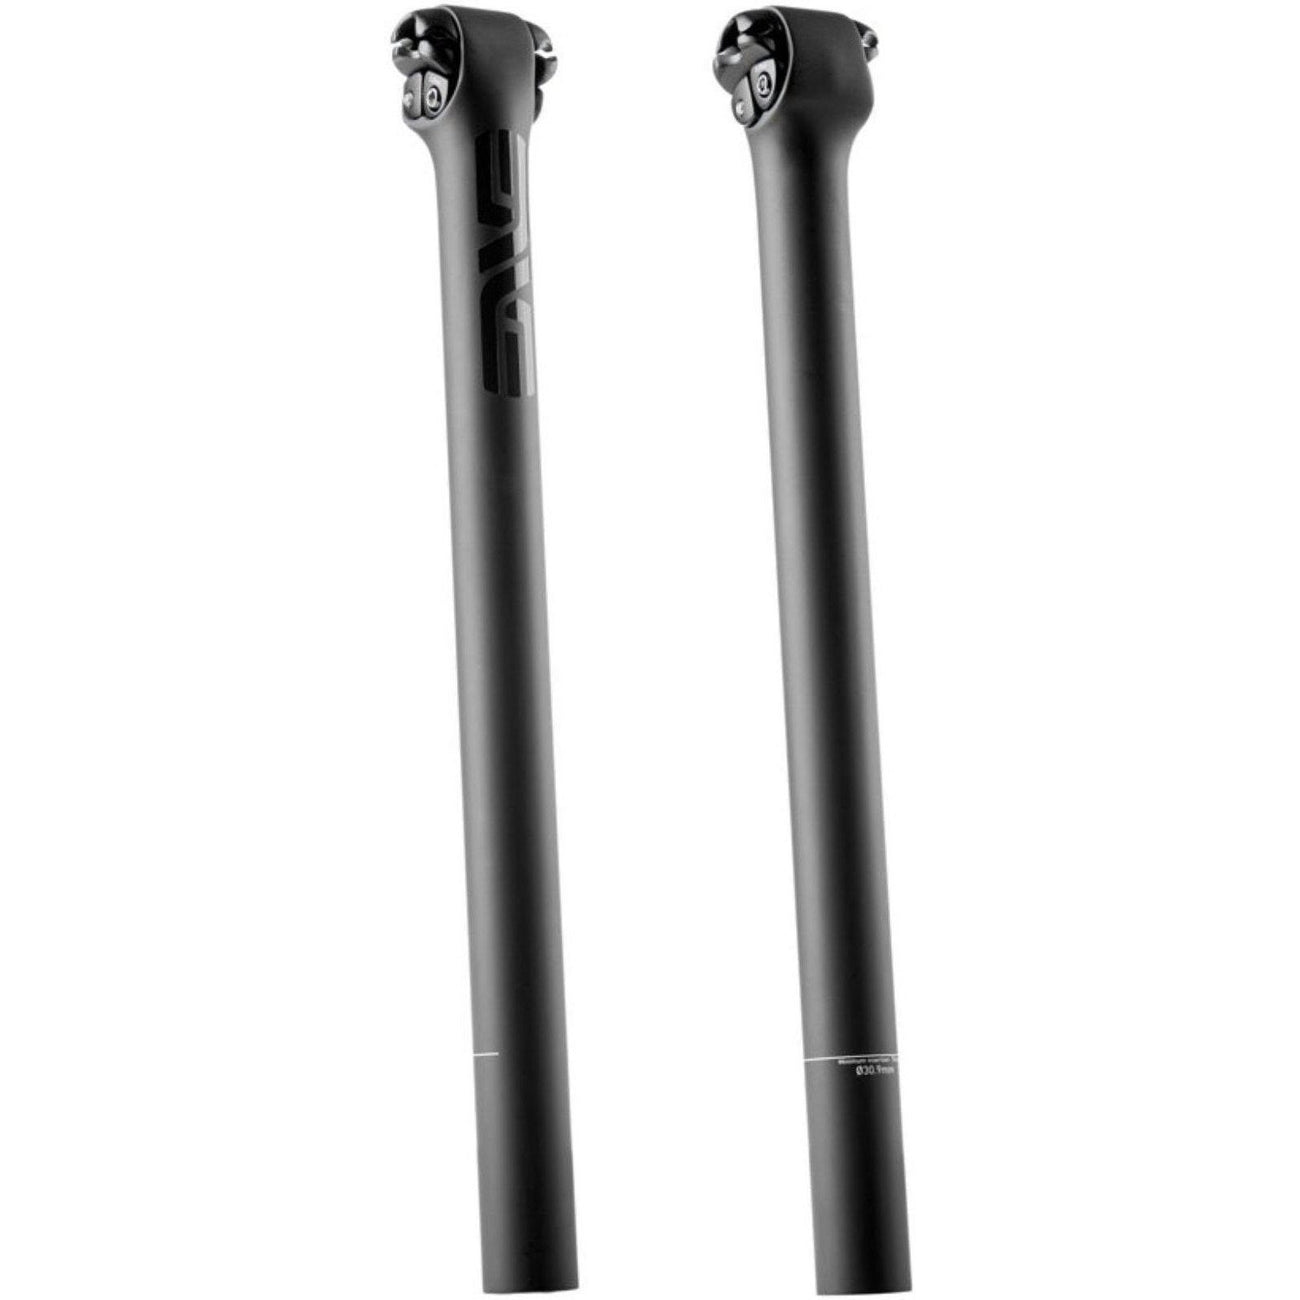 Seatposts - ENVE Carbon Seatpost 0mm Offset 2 Bolt